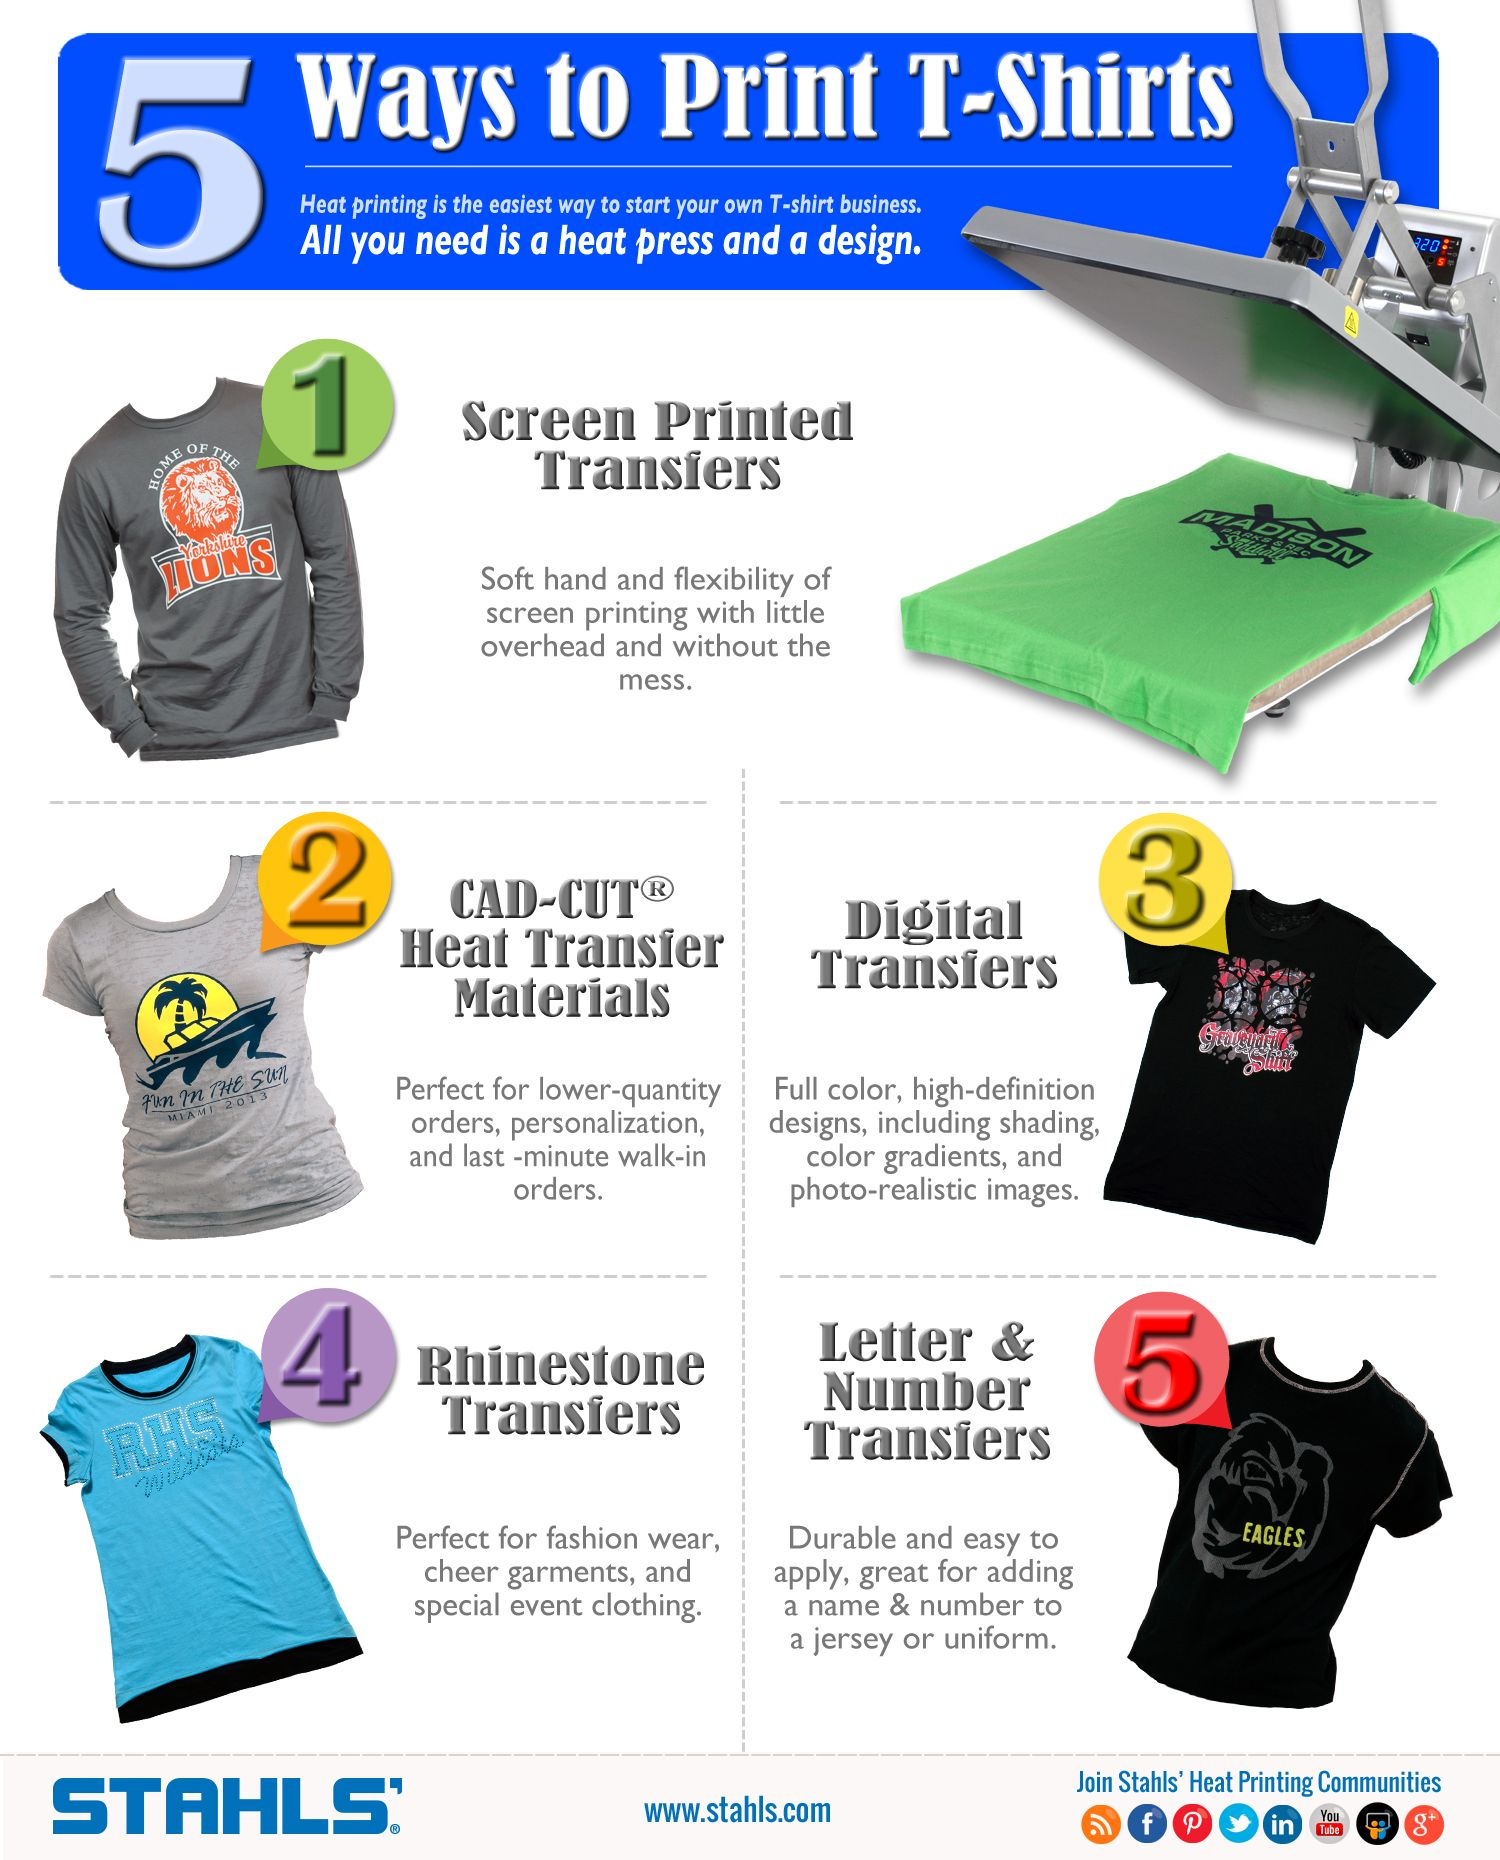 5 Ways to Print T-Shirts with a Heat Press | Heat press, Printing ...